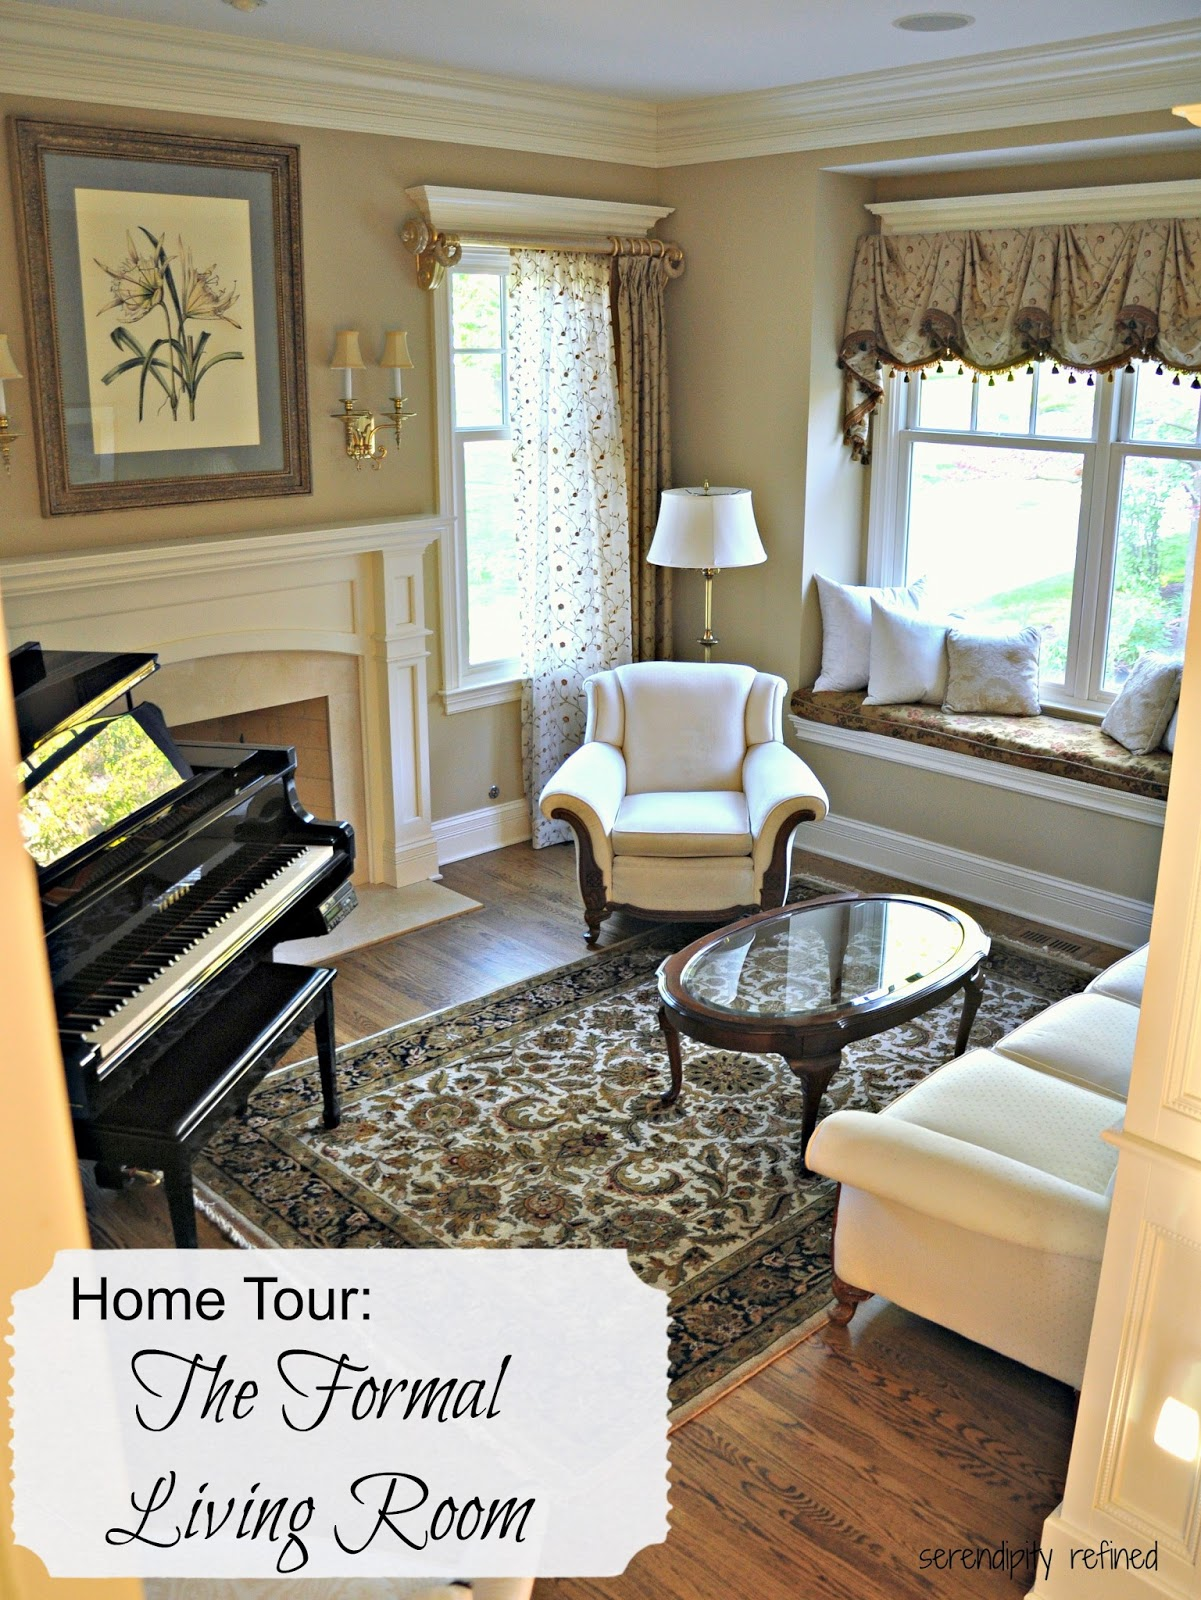 Serendipity refined blog house tour for The tuxedo house